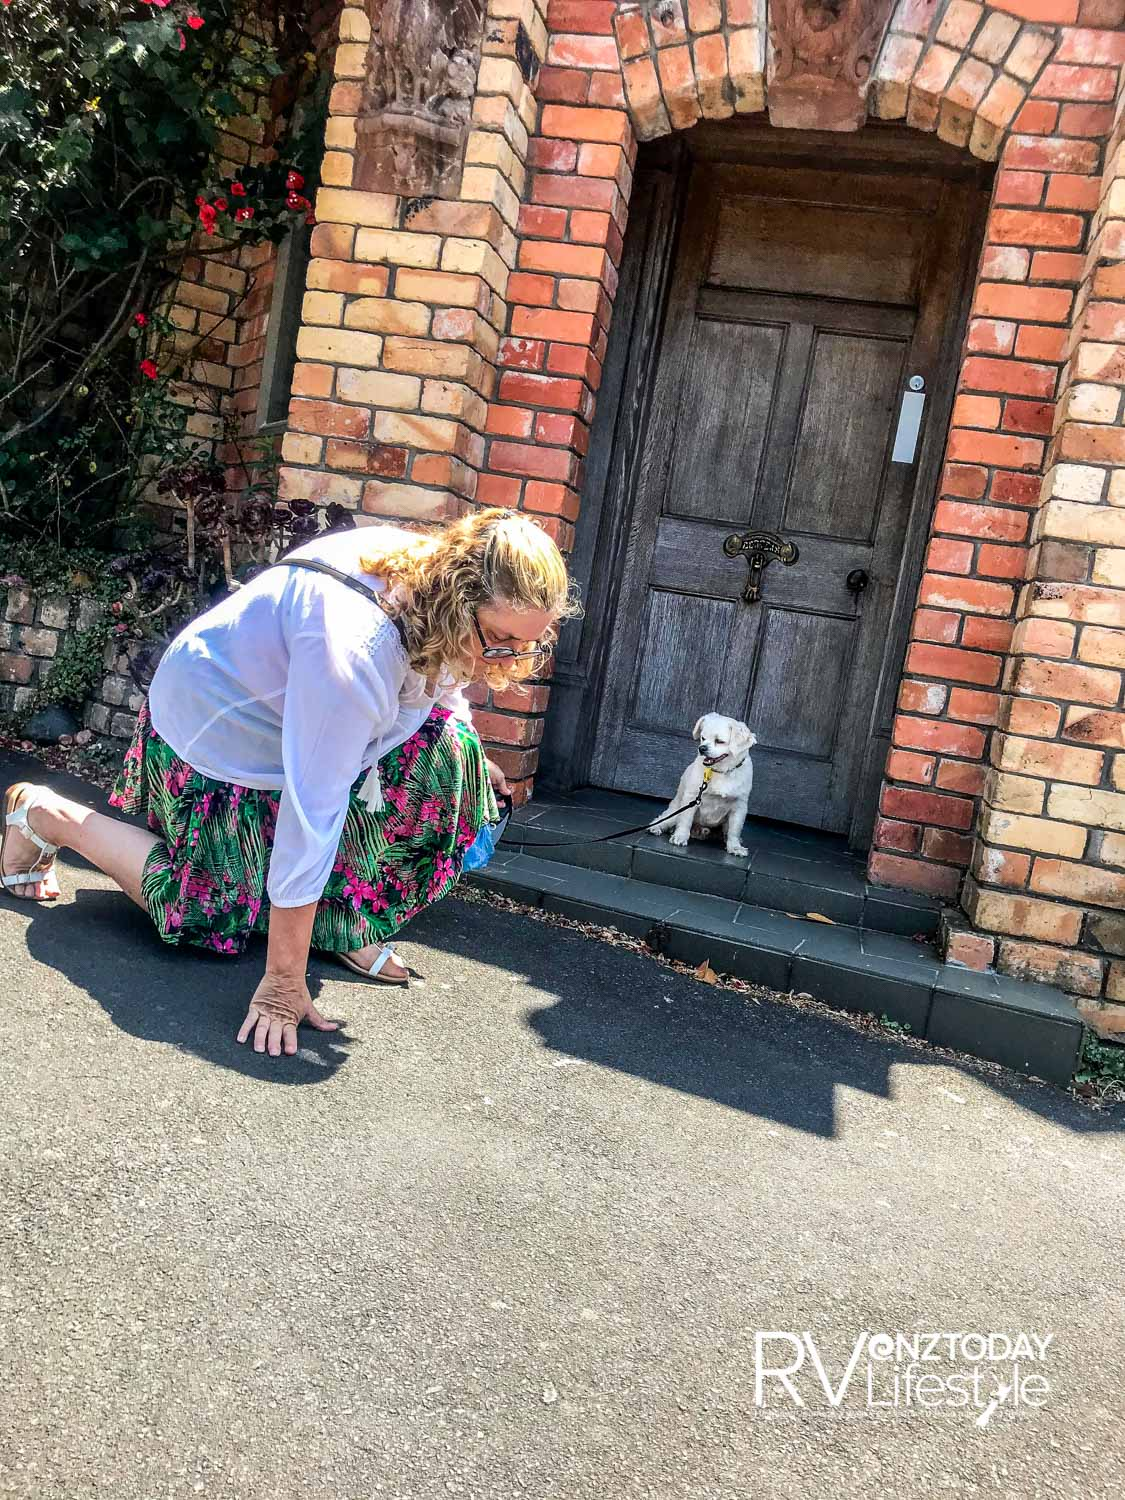 Thanks to da mama – she checks the footpath to make sure it's not too hot for my little feet